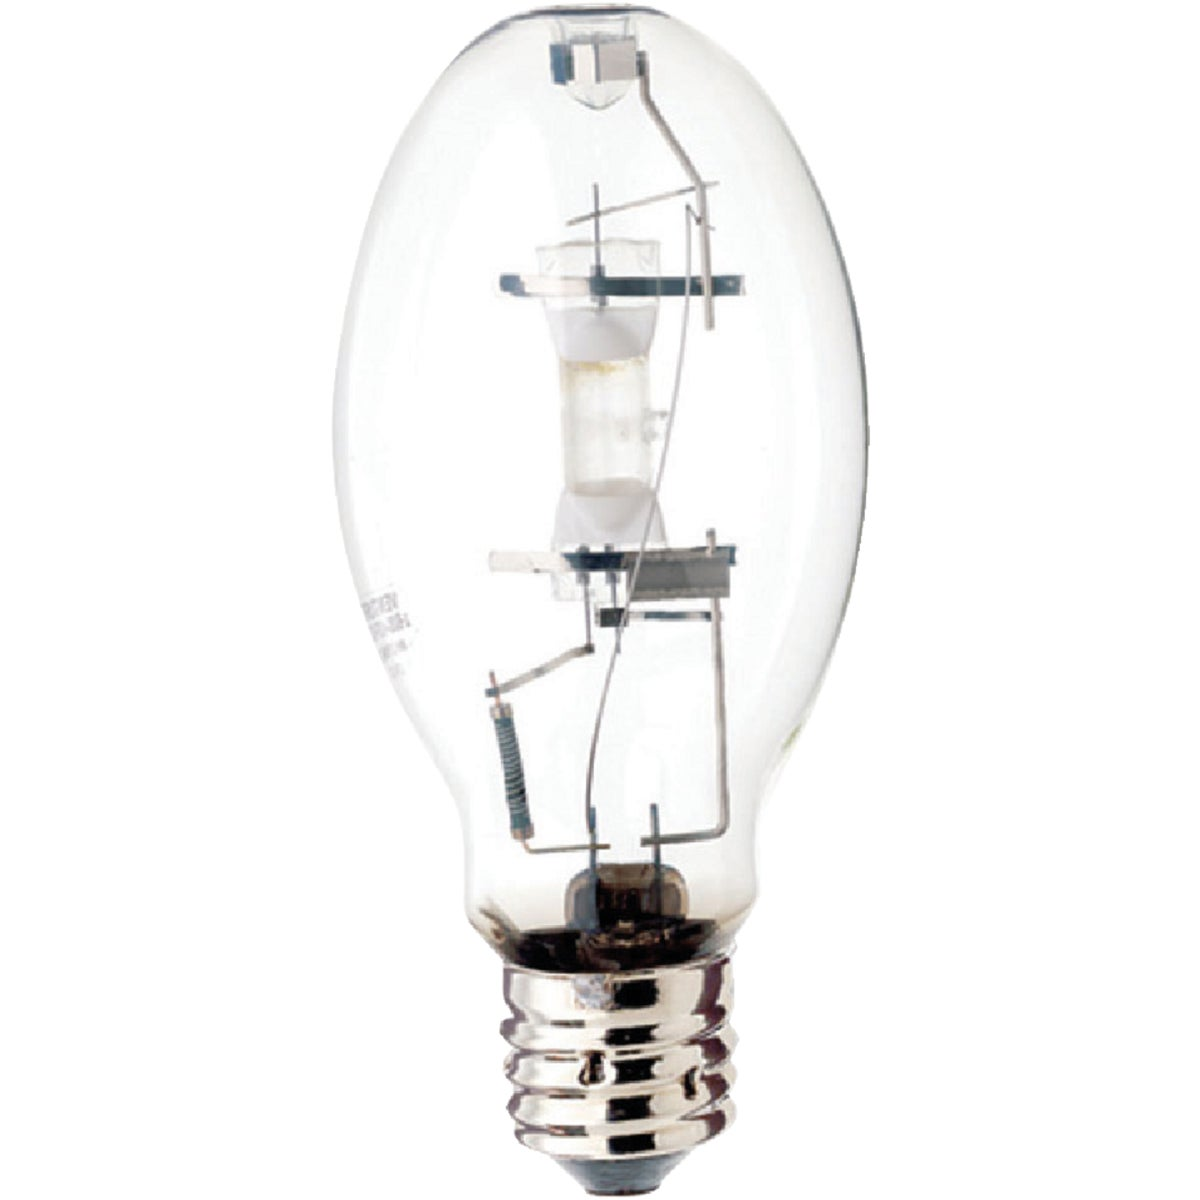 175W MOG BASE MERC BULB - 26440 HR175A39/CP by G E Lighting Incom